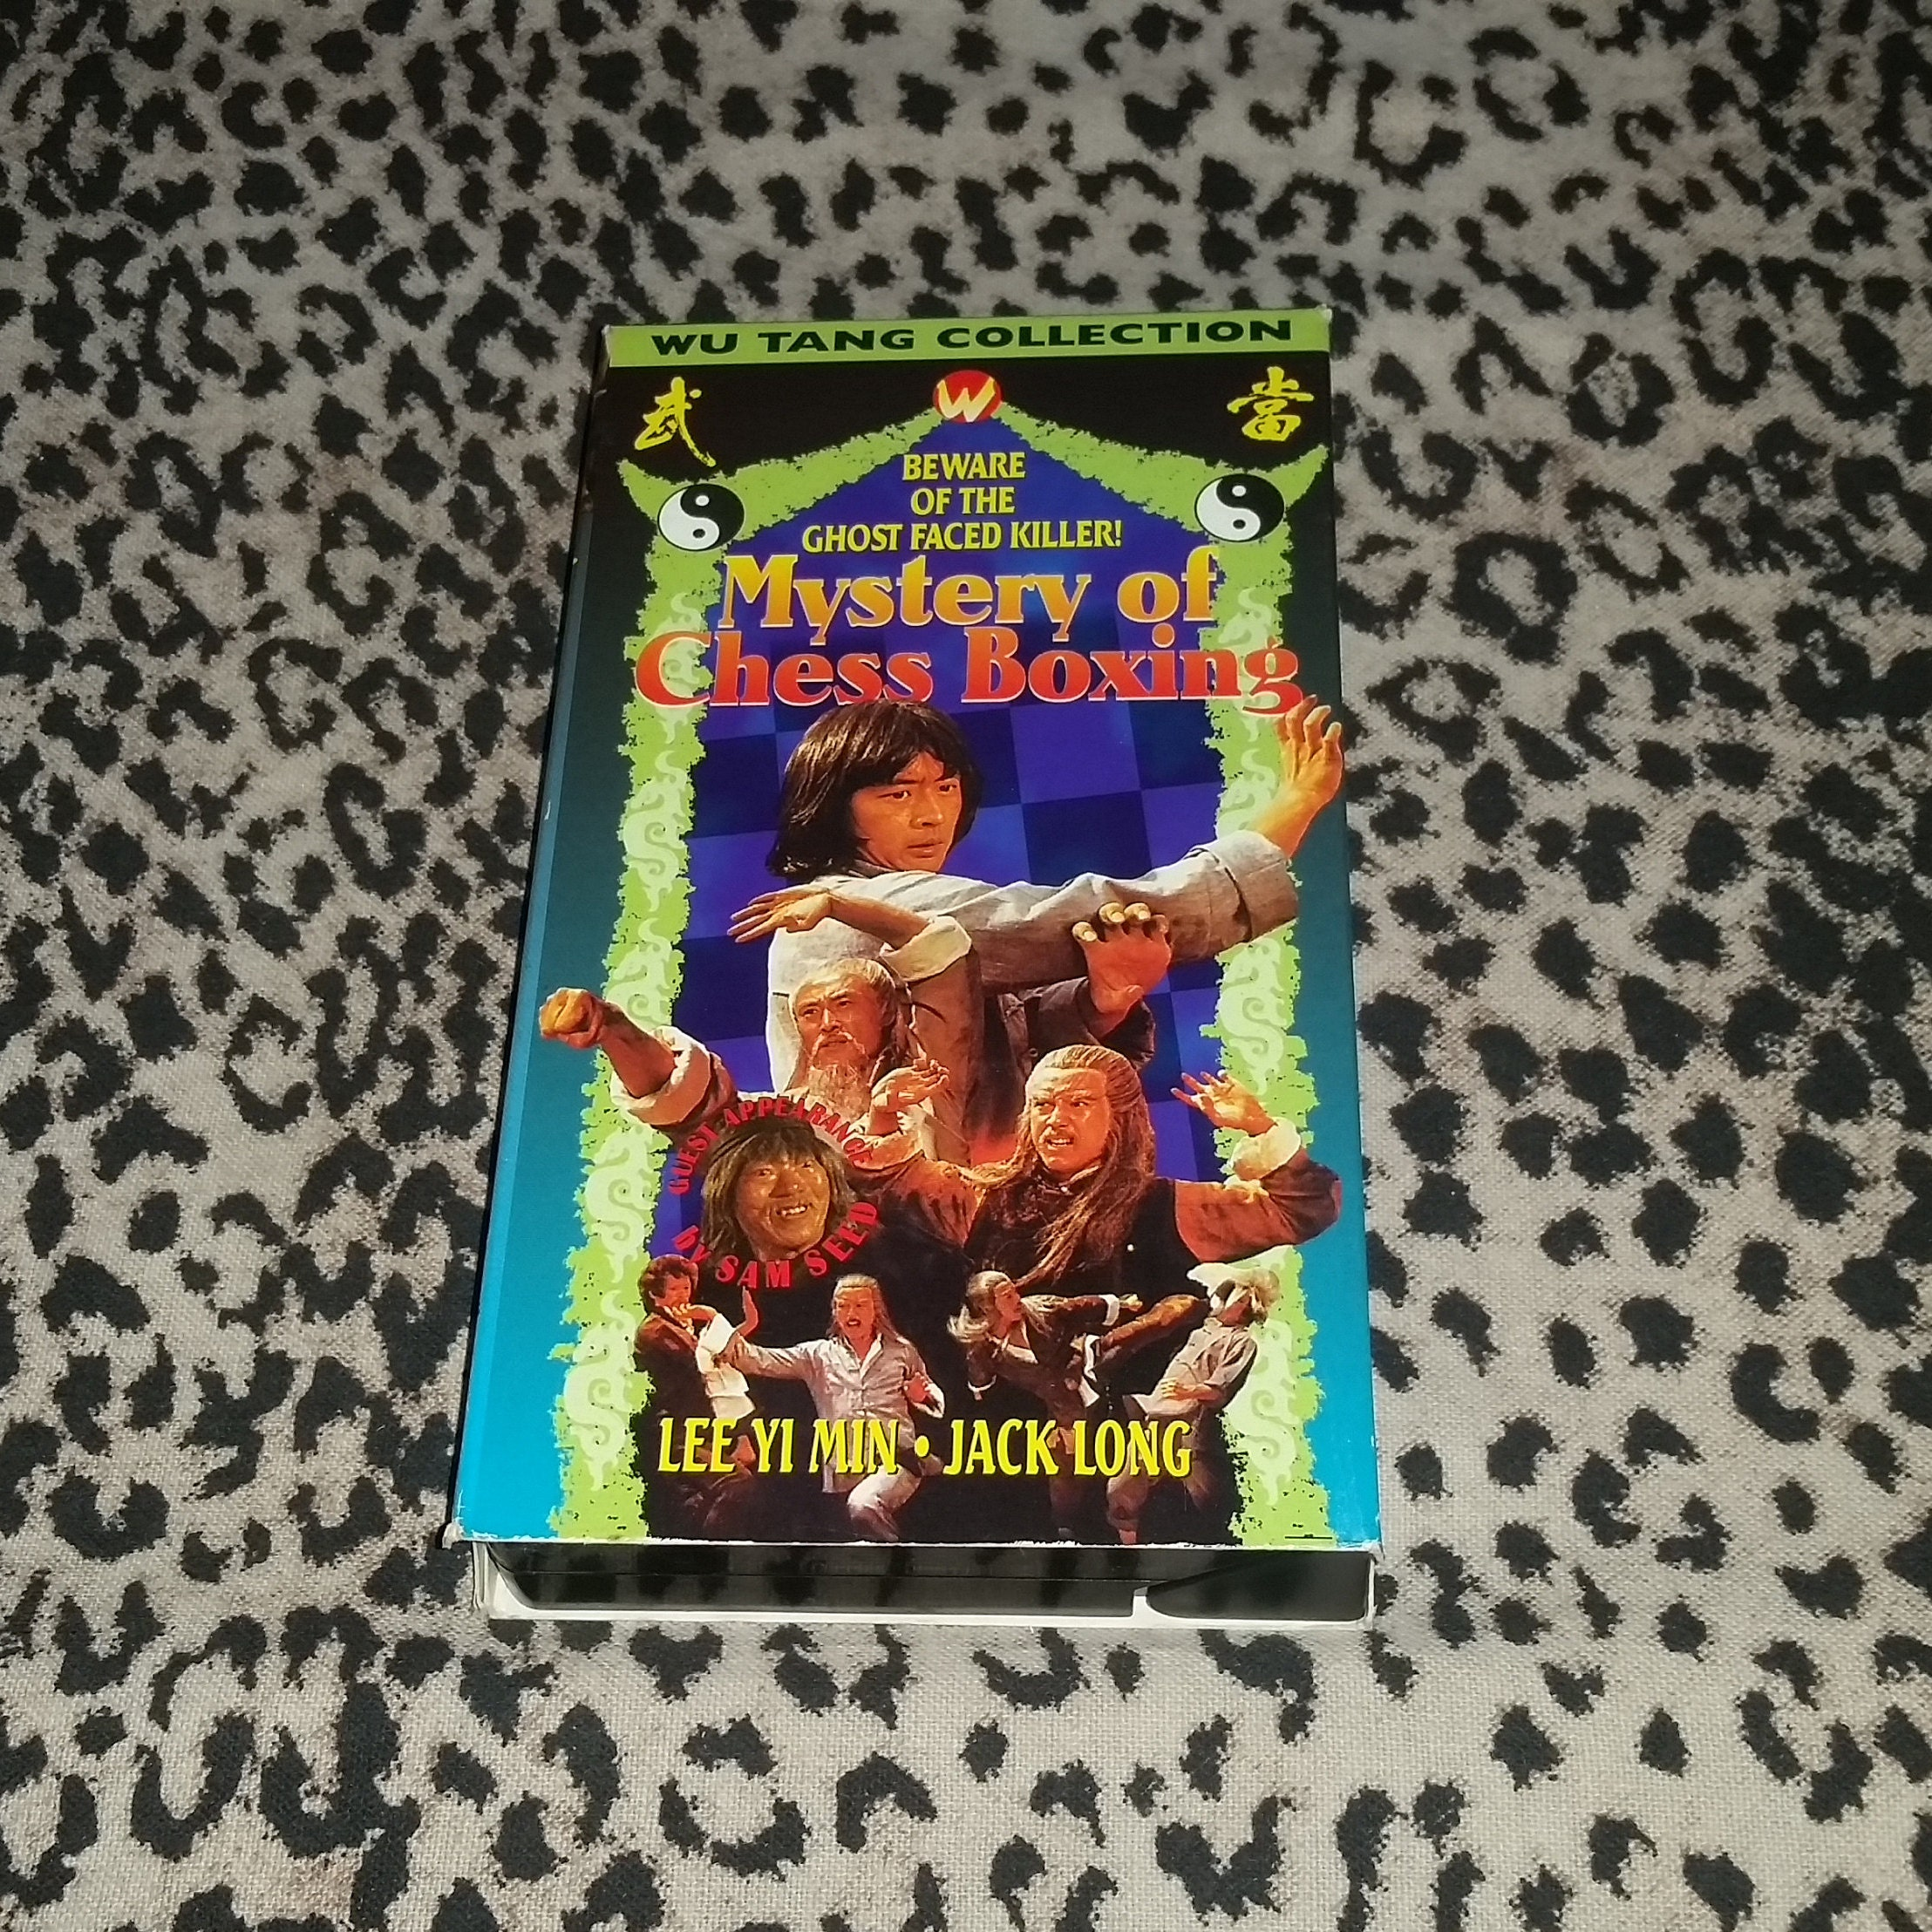 Mystery of Chess Boxing [VHS] Wu Tang Collection Vintage Rare Kung Fu VHS  Wu Tang Clan Inspiration Movies Ghostface Killer Htf Oop VHS